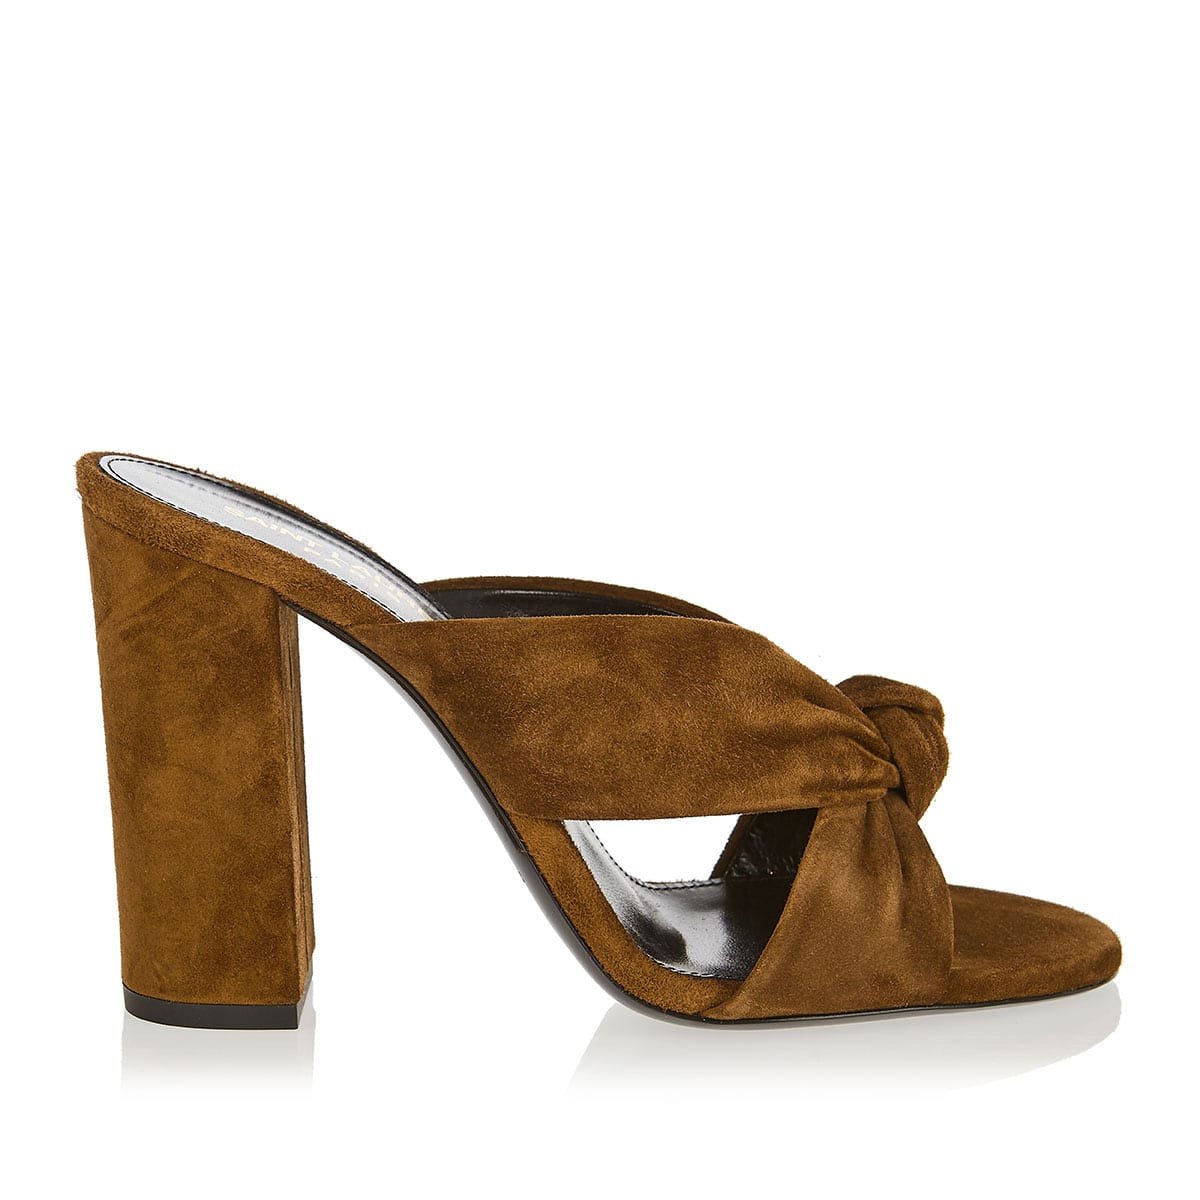 Loulou suede mules